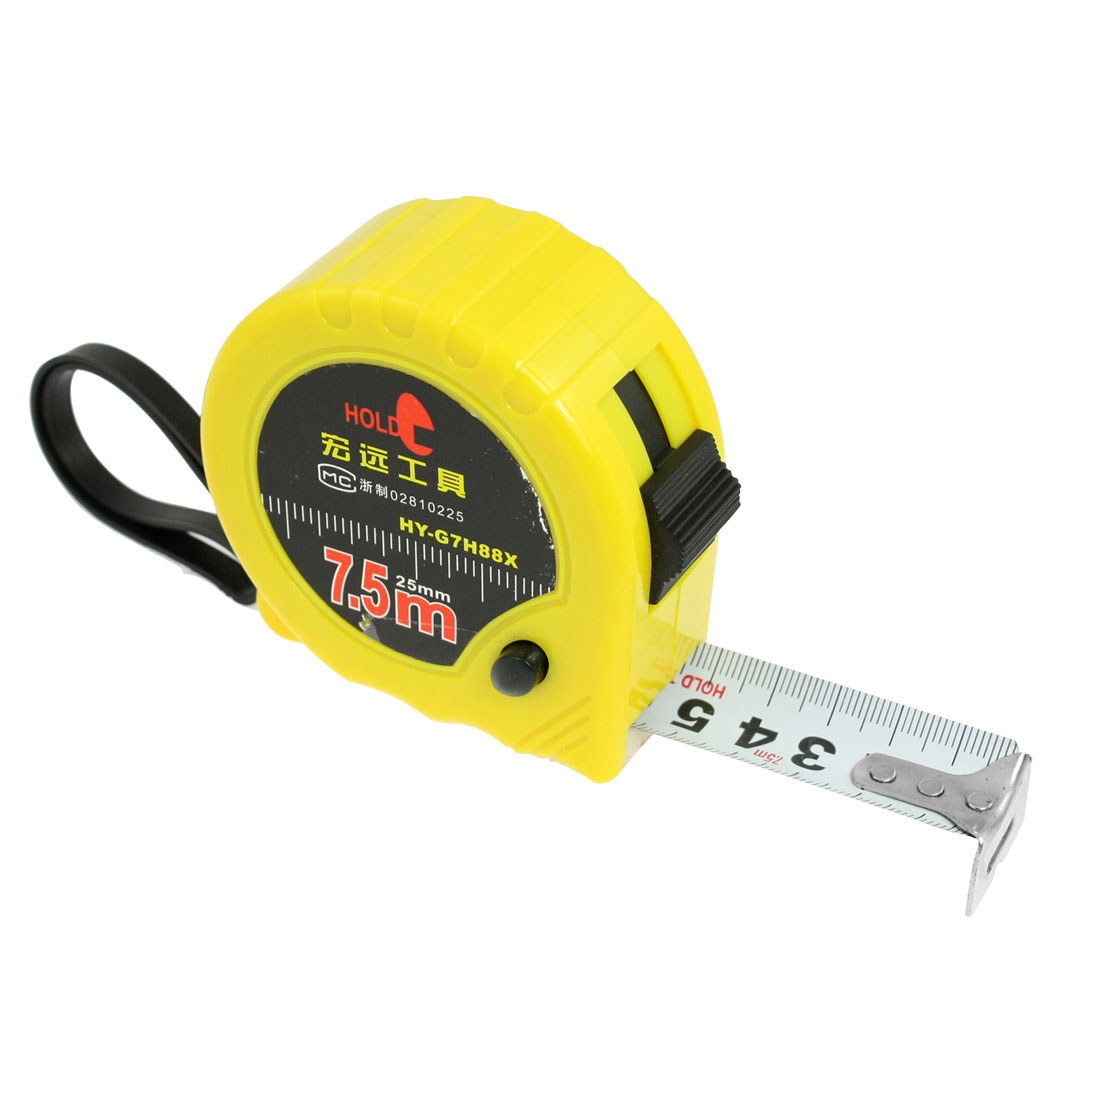 Unique Bargains Unique Bargains 25-Foot Retractable Metric Steel Tape Measure